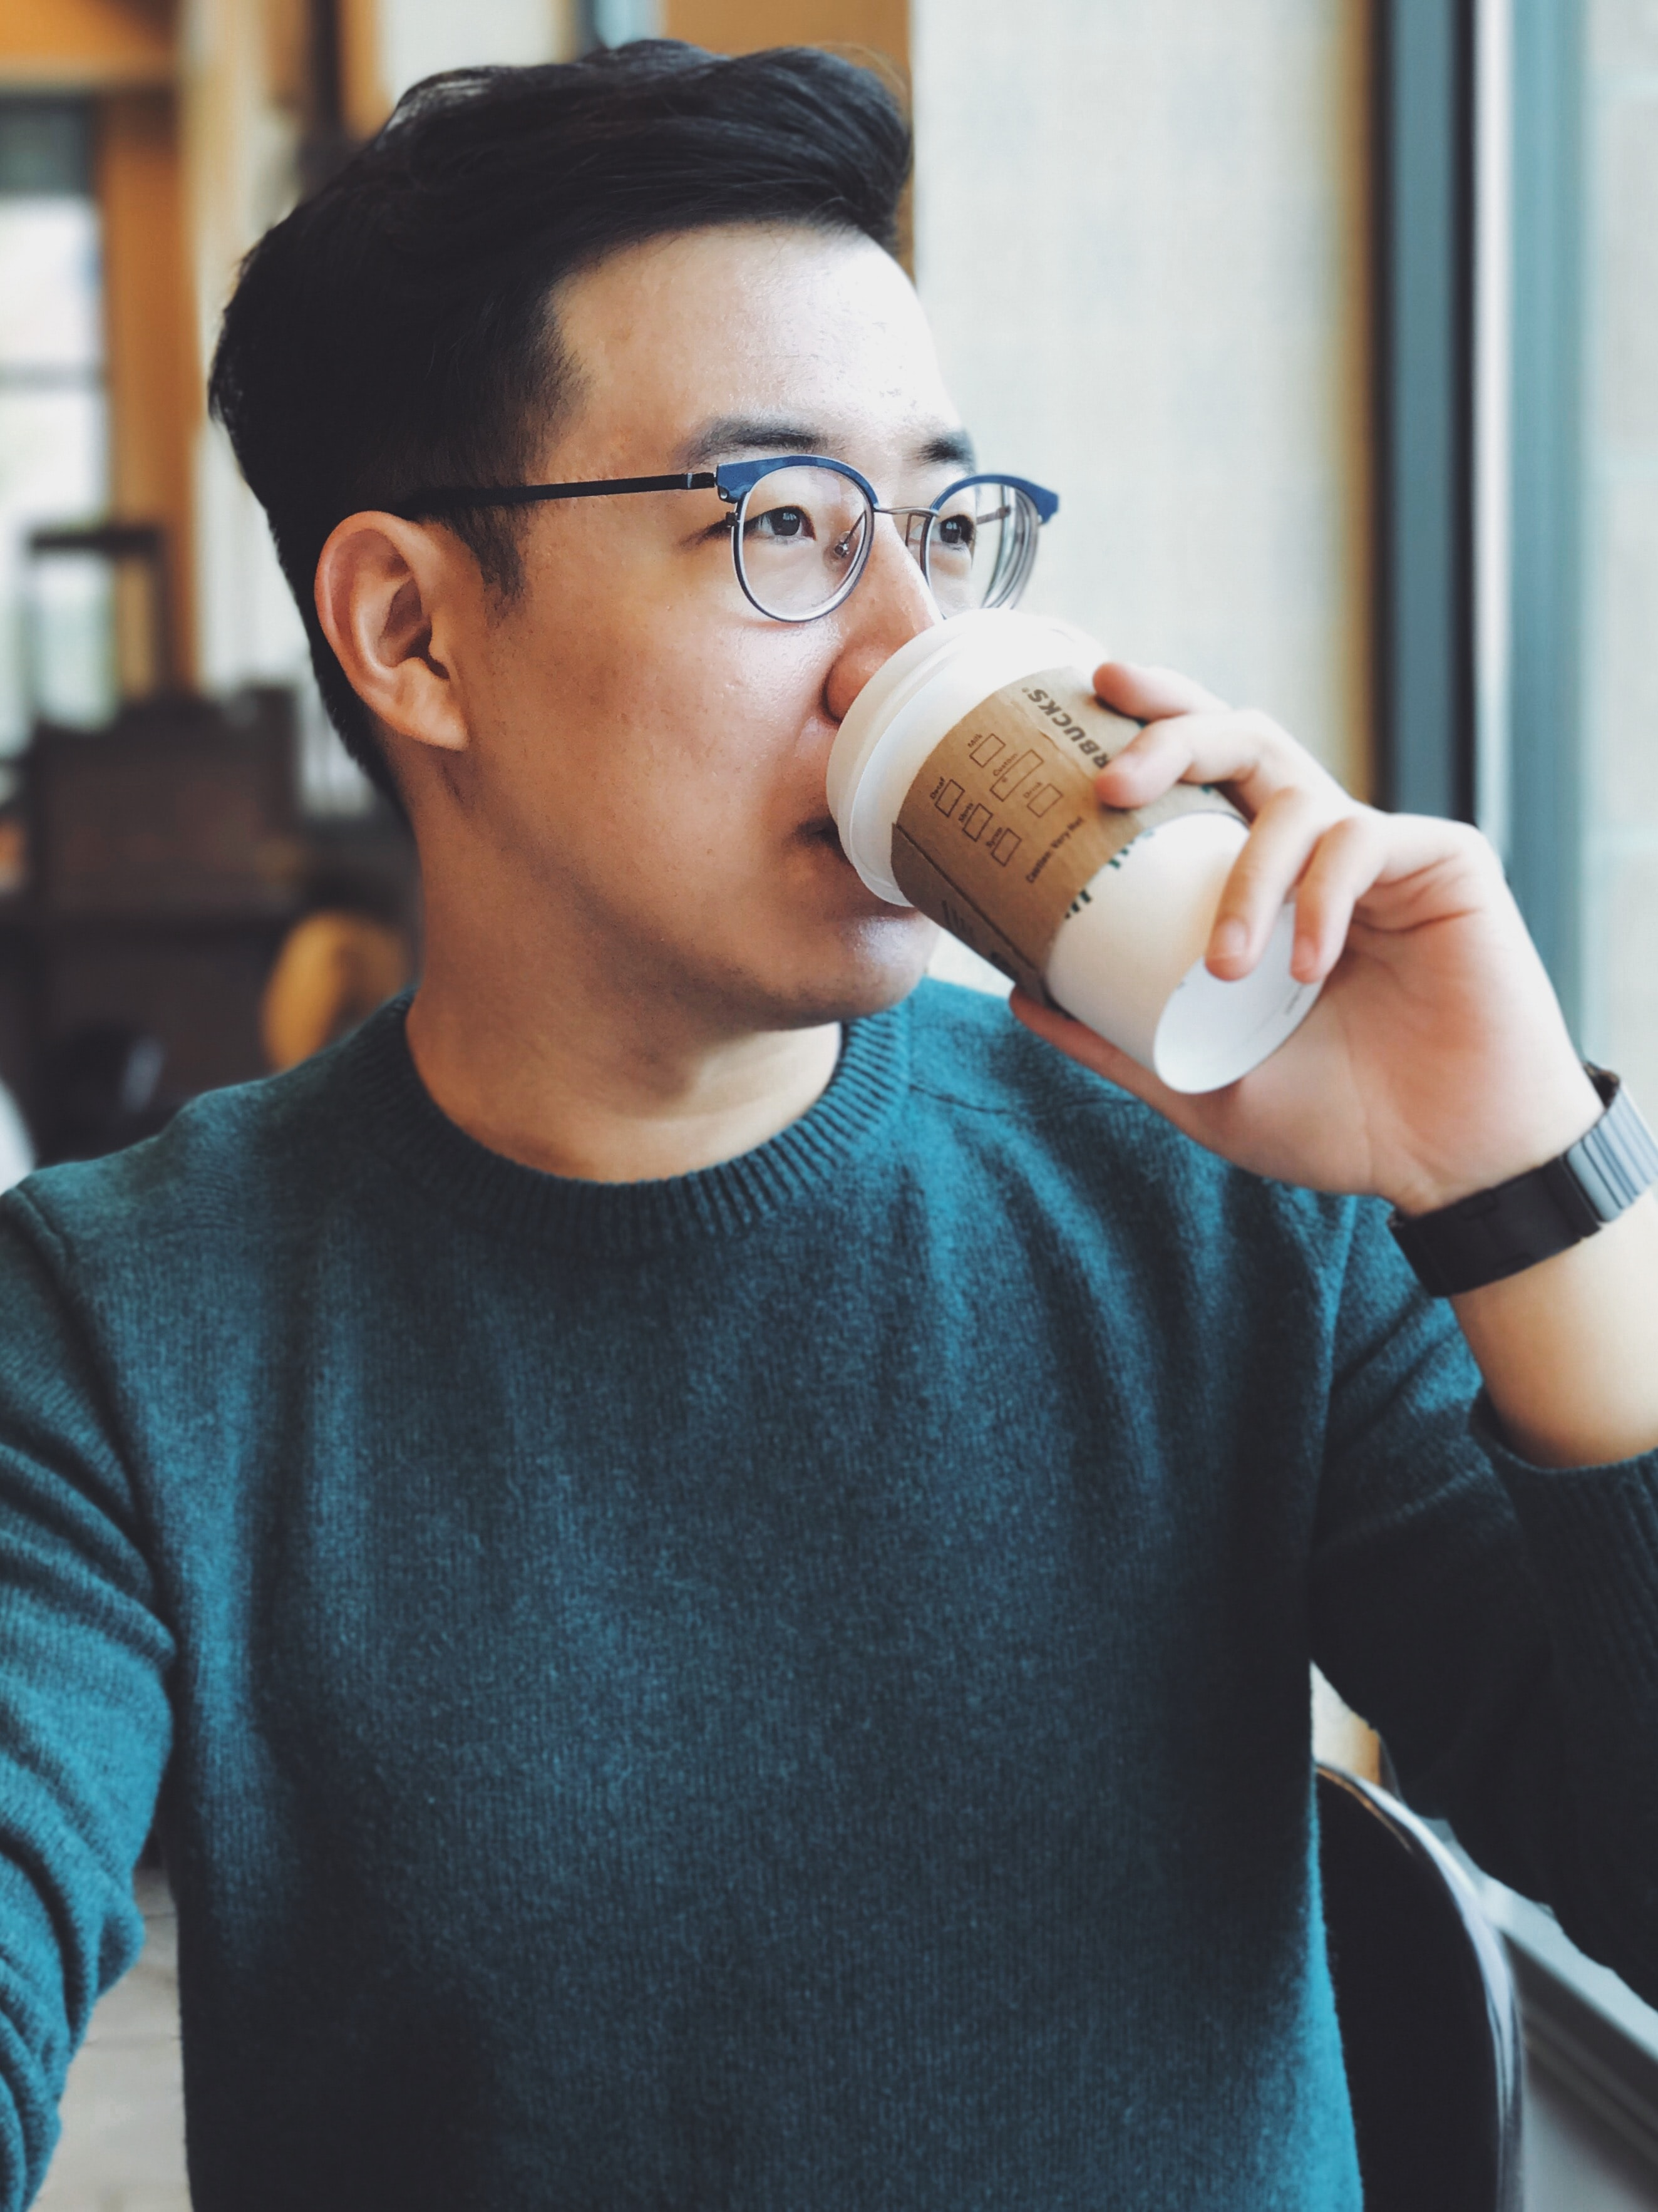 Man in glasses sipping on a cup of starbucks coffee in a cafe